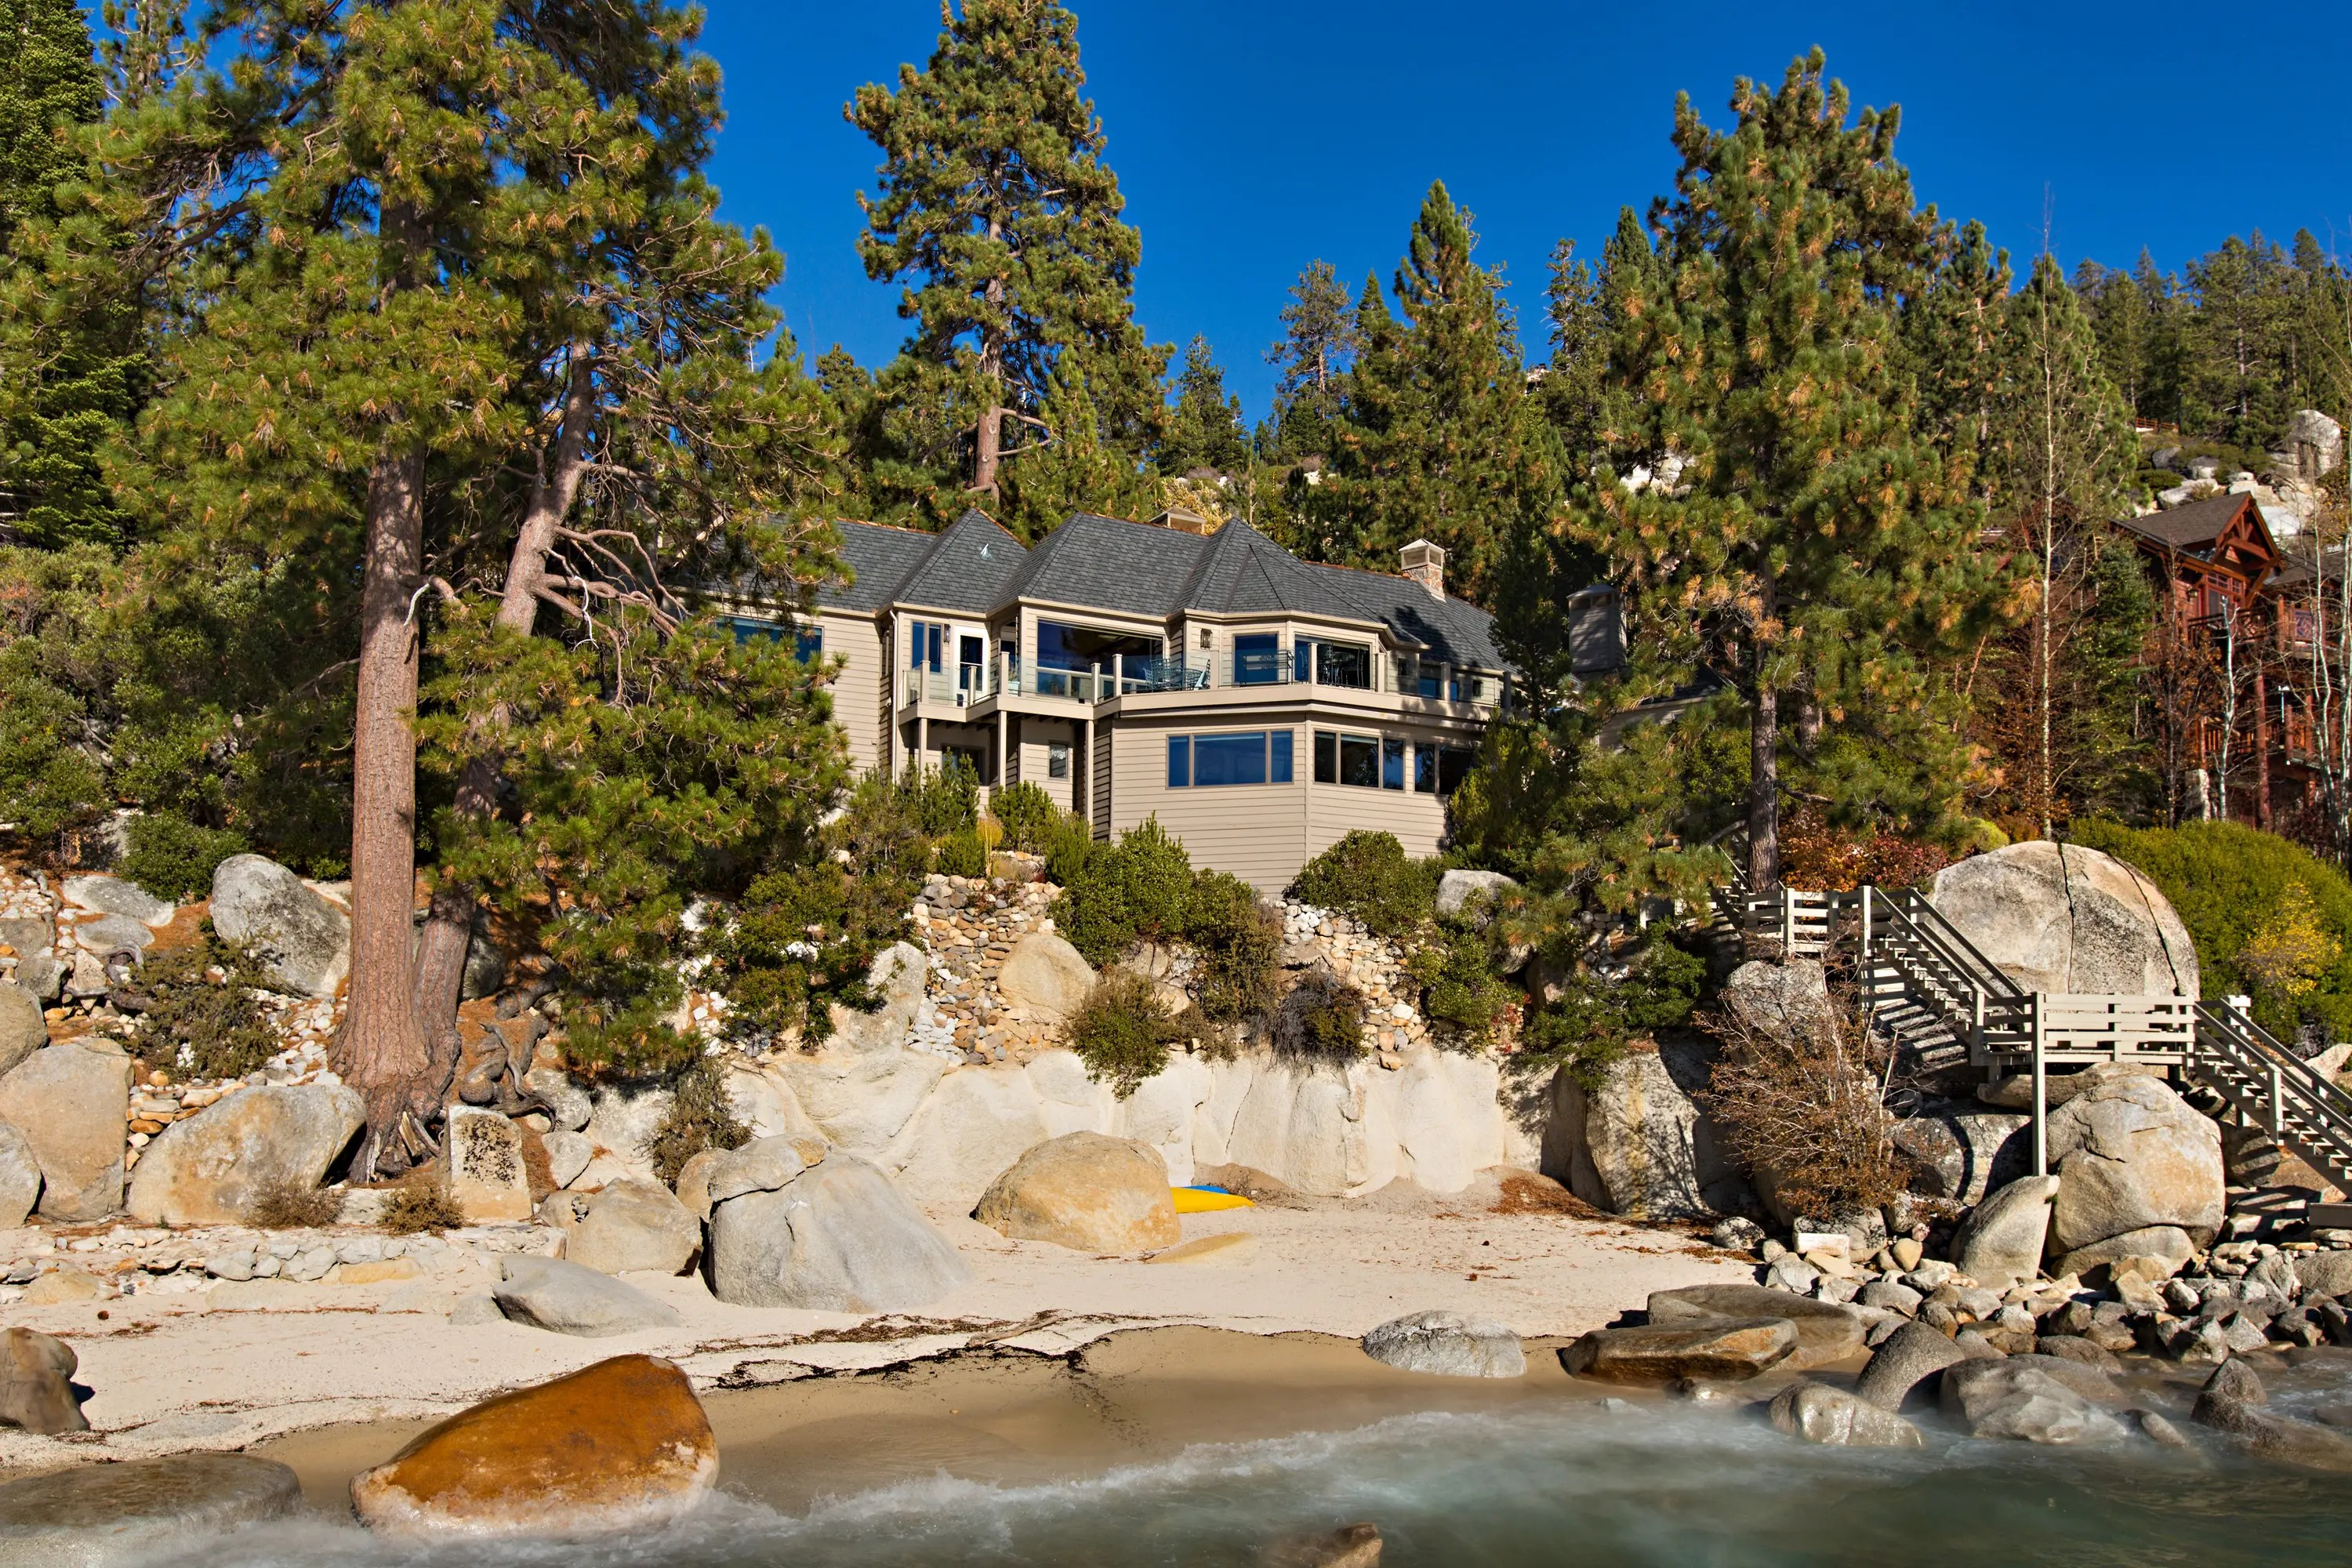 The $11.9 million home sits on a secluded one-acre lot.